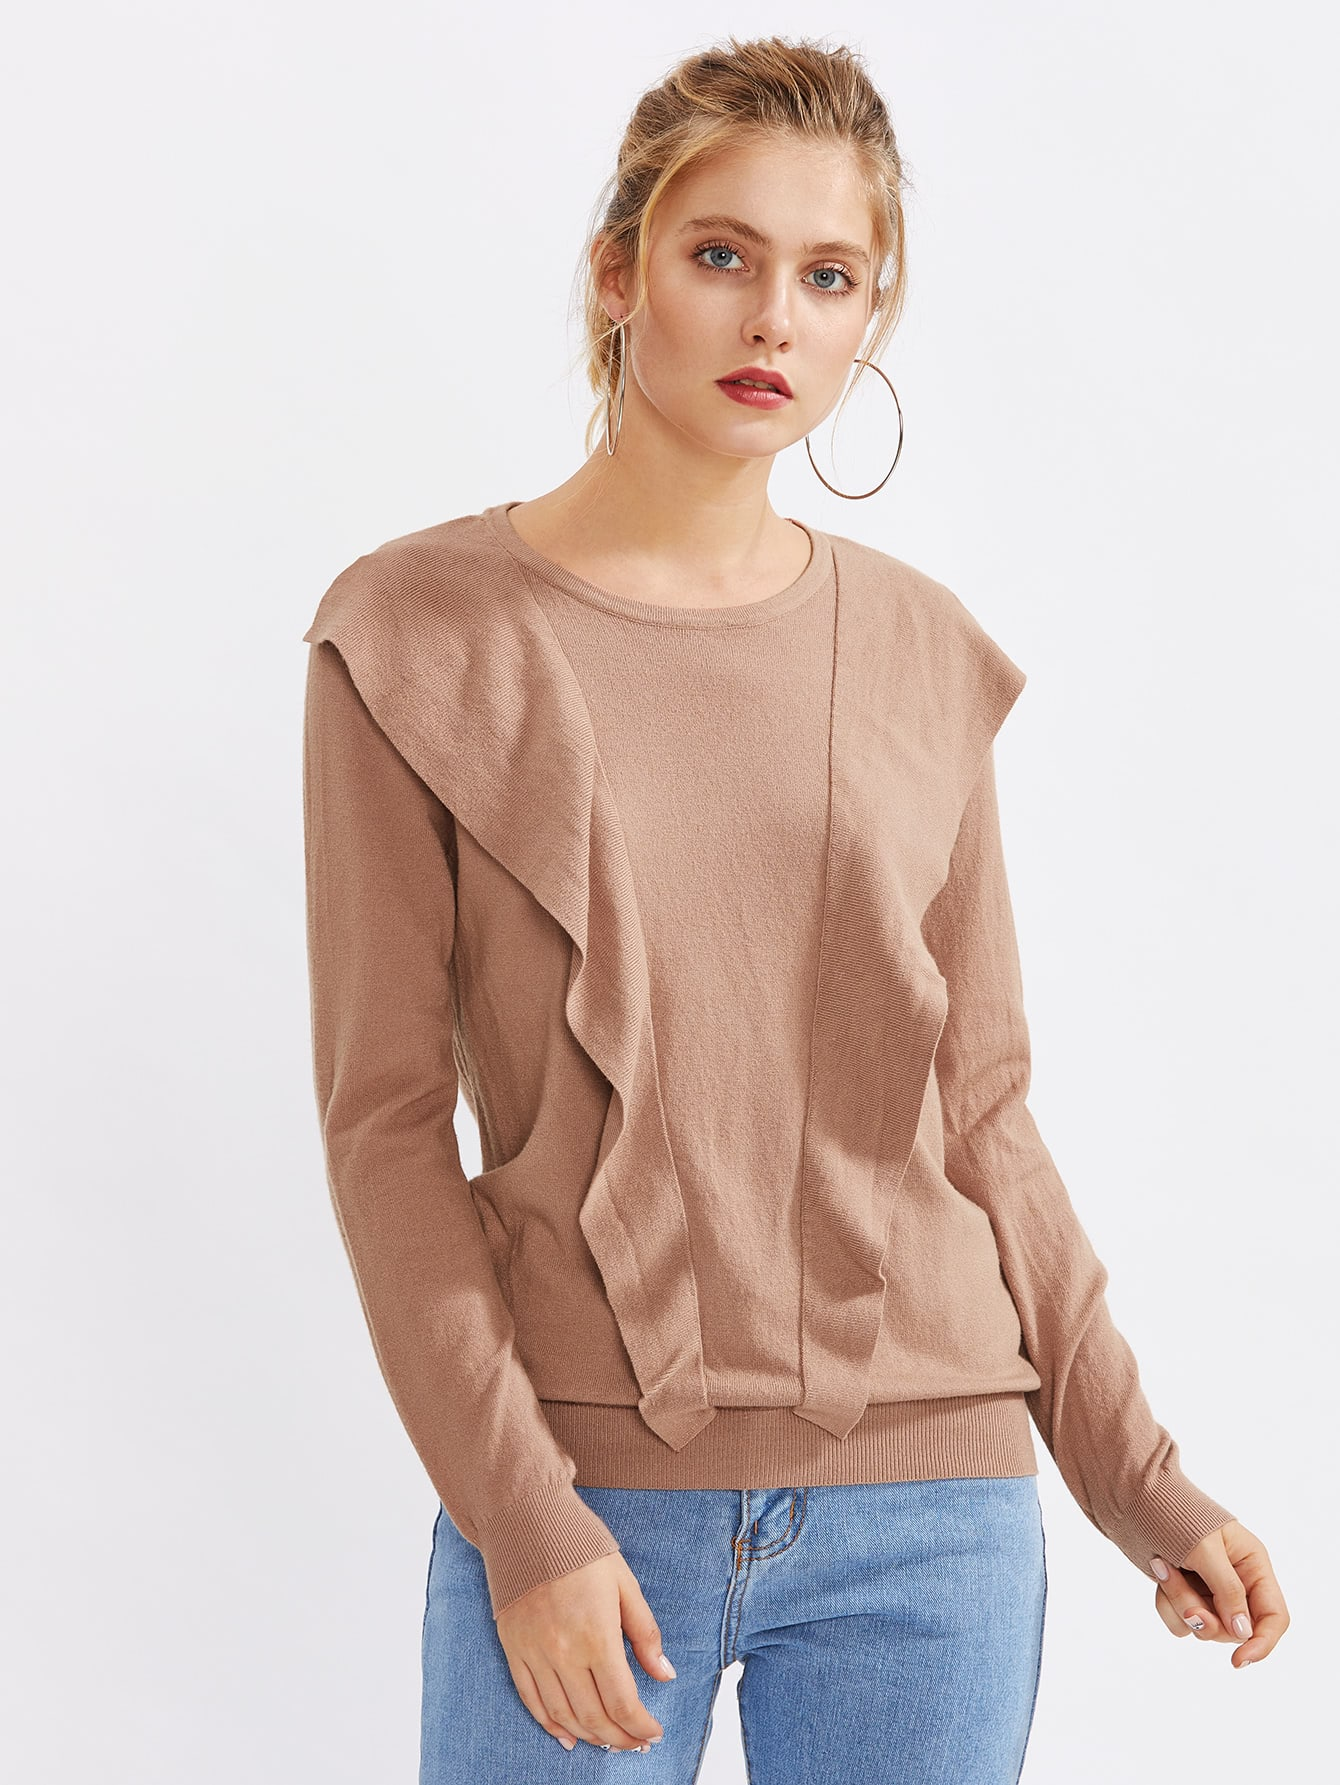 Frill Trim Knitwear sweater170728405